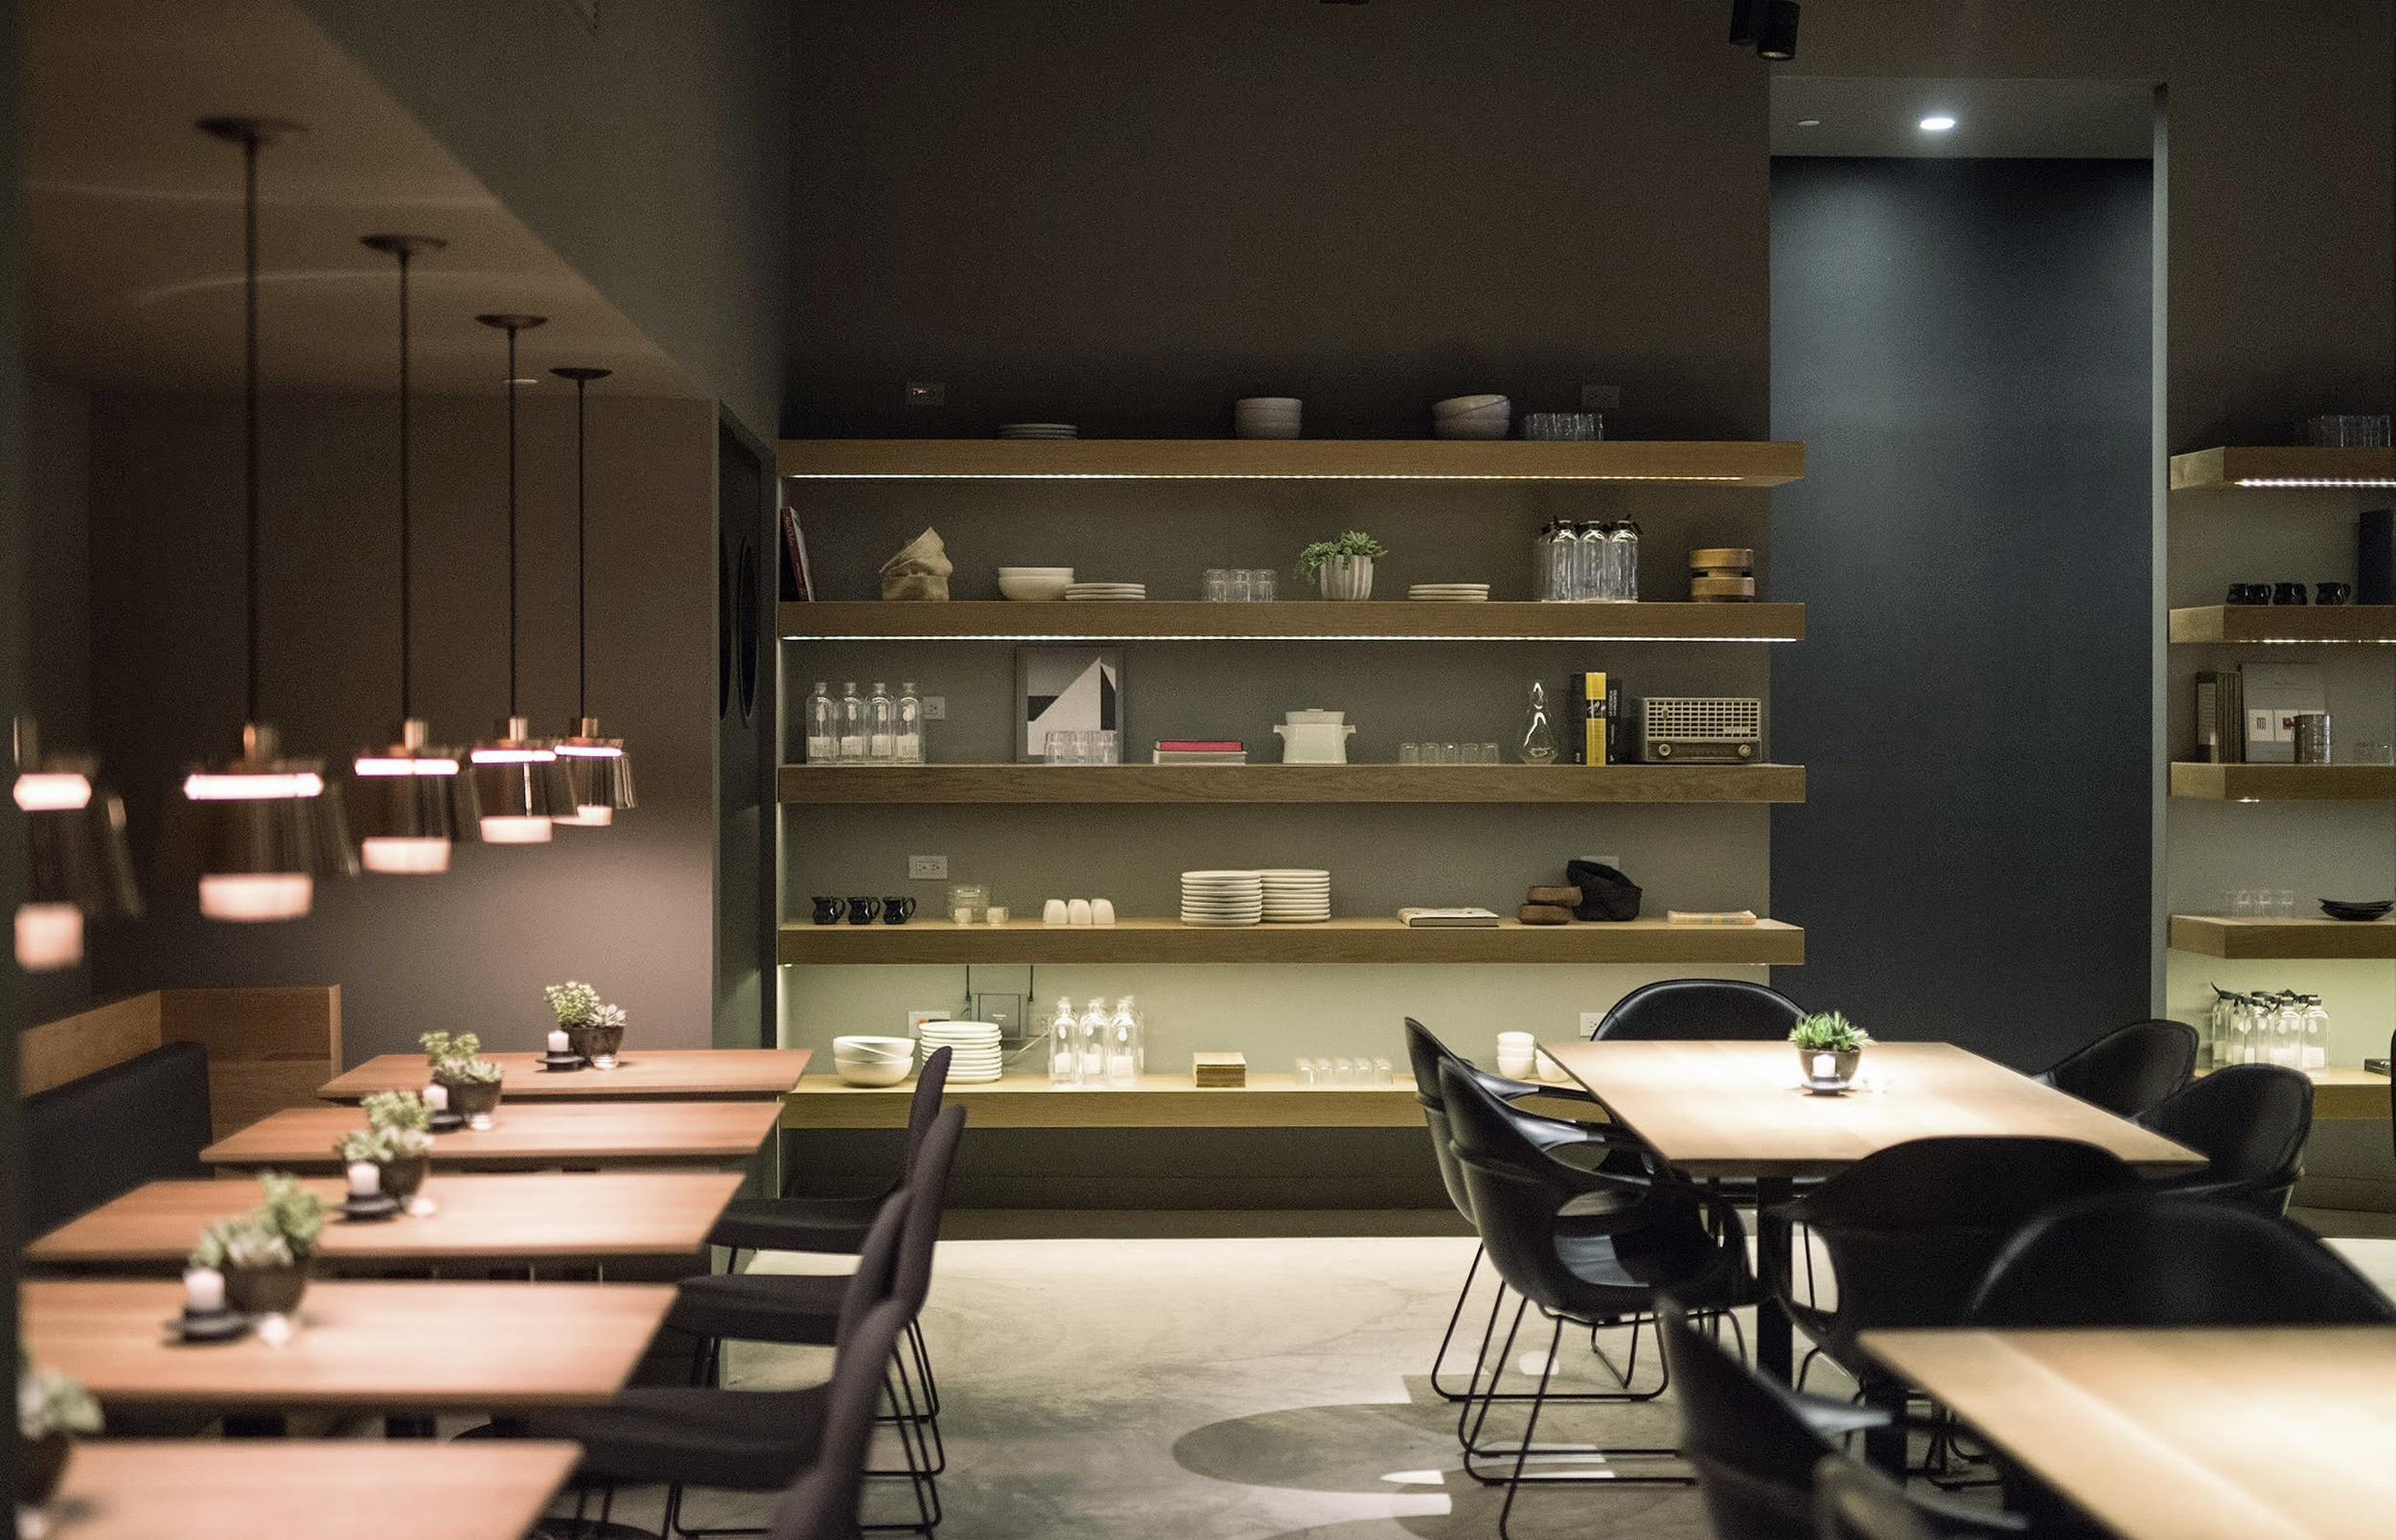 Situated in the Flatiron neighborhood in Manhattan, Cosme's Interior design is contemporary rustic chic, comprising of unadorned wooden tables, poured cement floors, low hanging pendant lights and pleasing vignettes of crockery and barware accessories displayed on open shelves